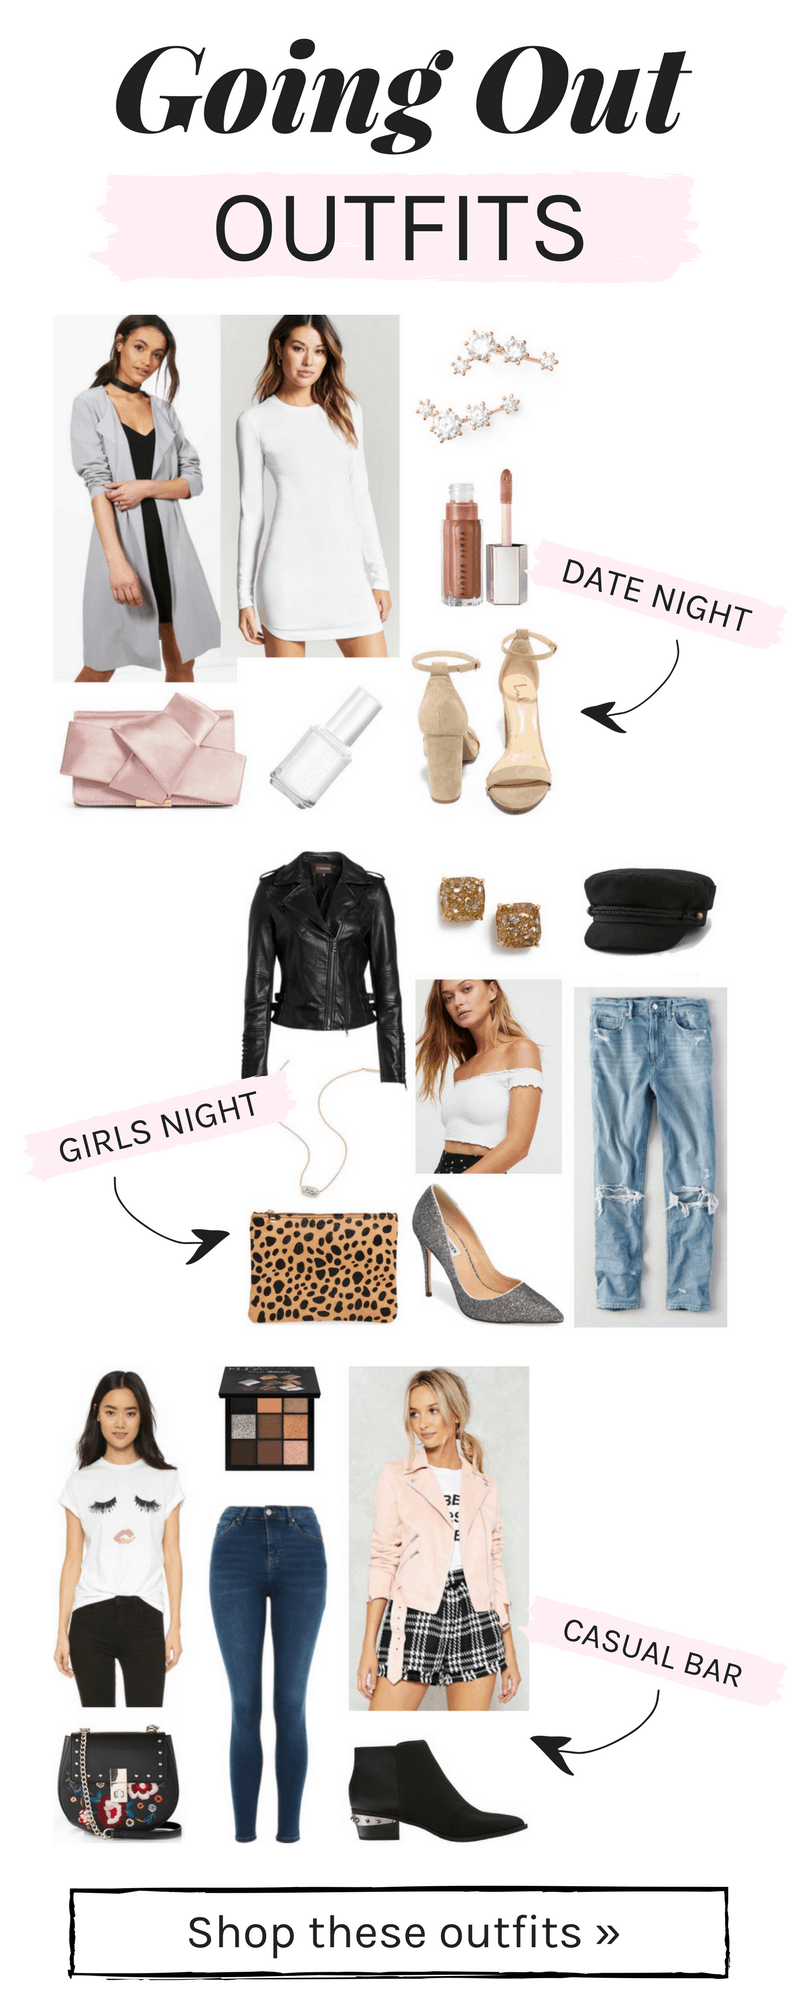 Going out outfits: Outfit ideas for date night, casual bar, and girls night out, plus more outfits for college girls going to parties